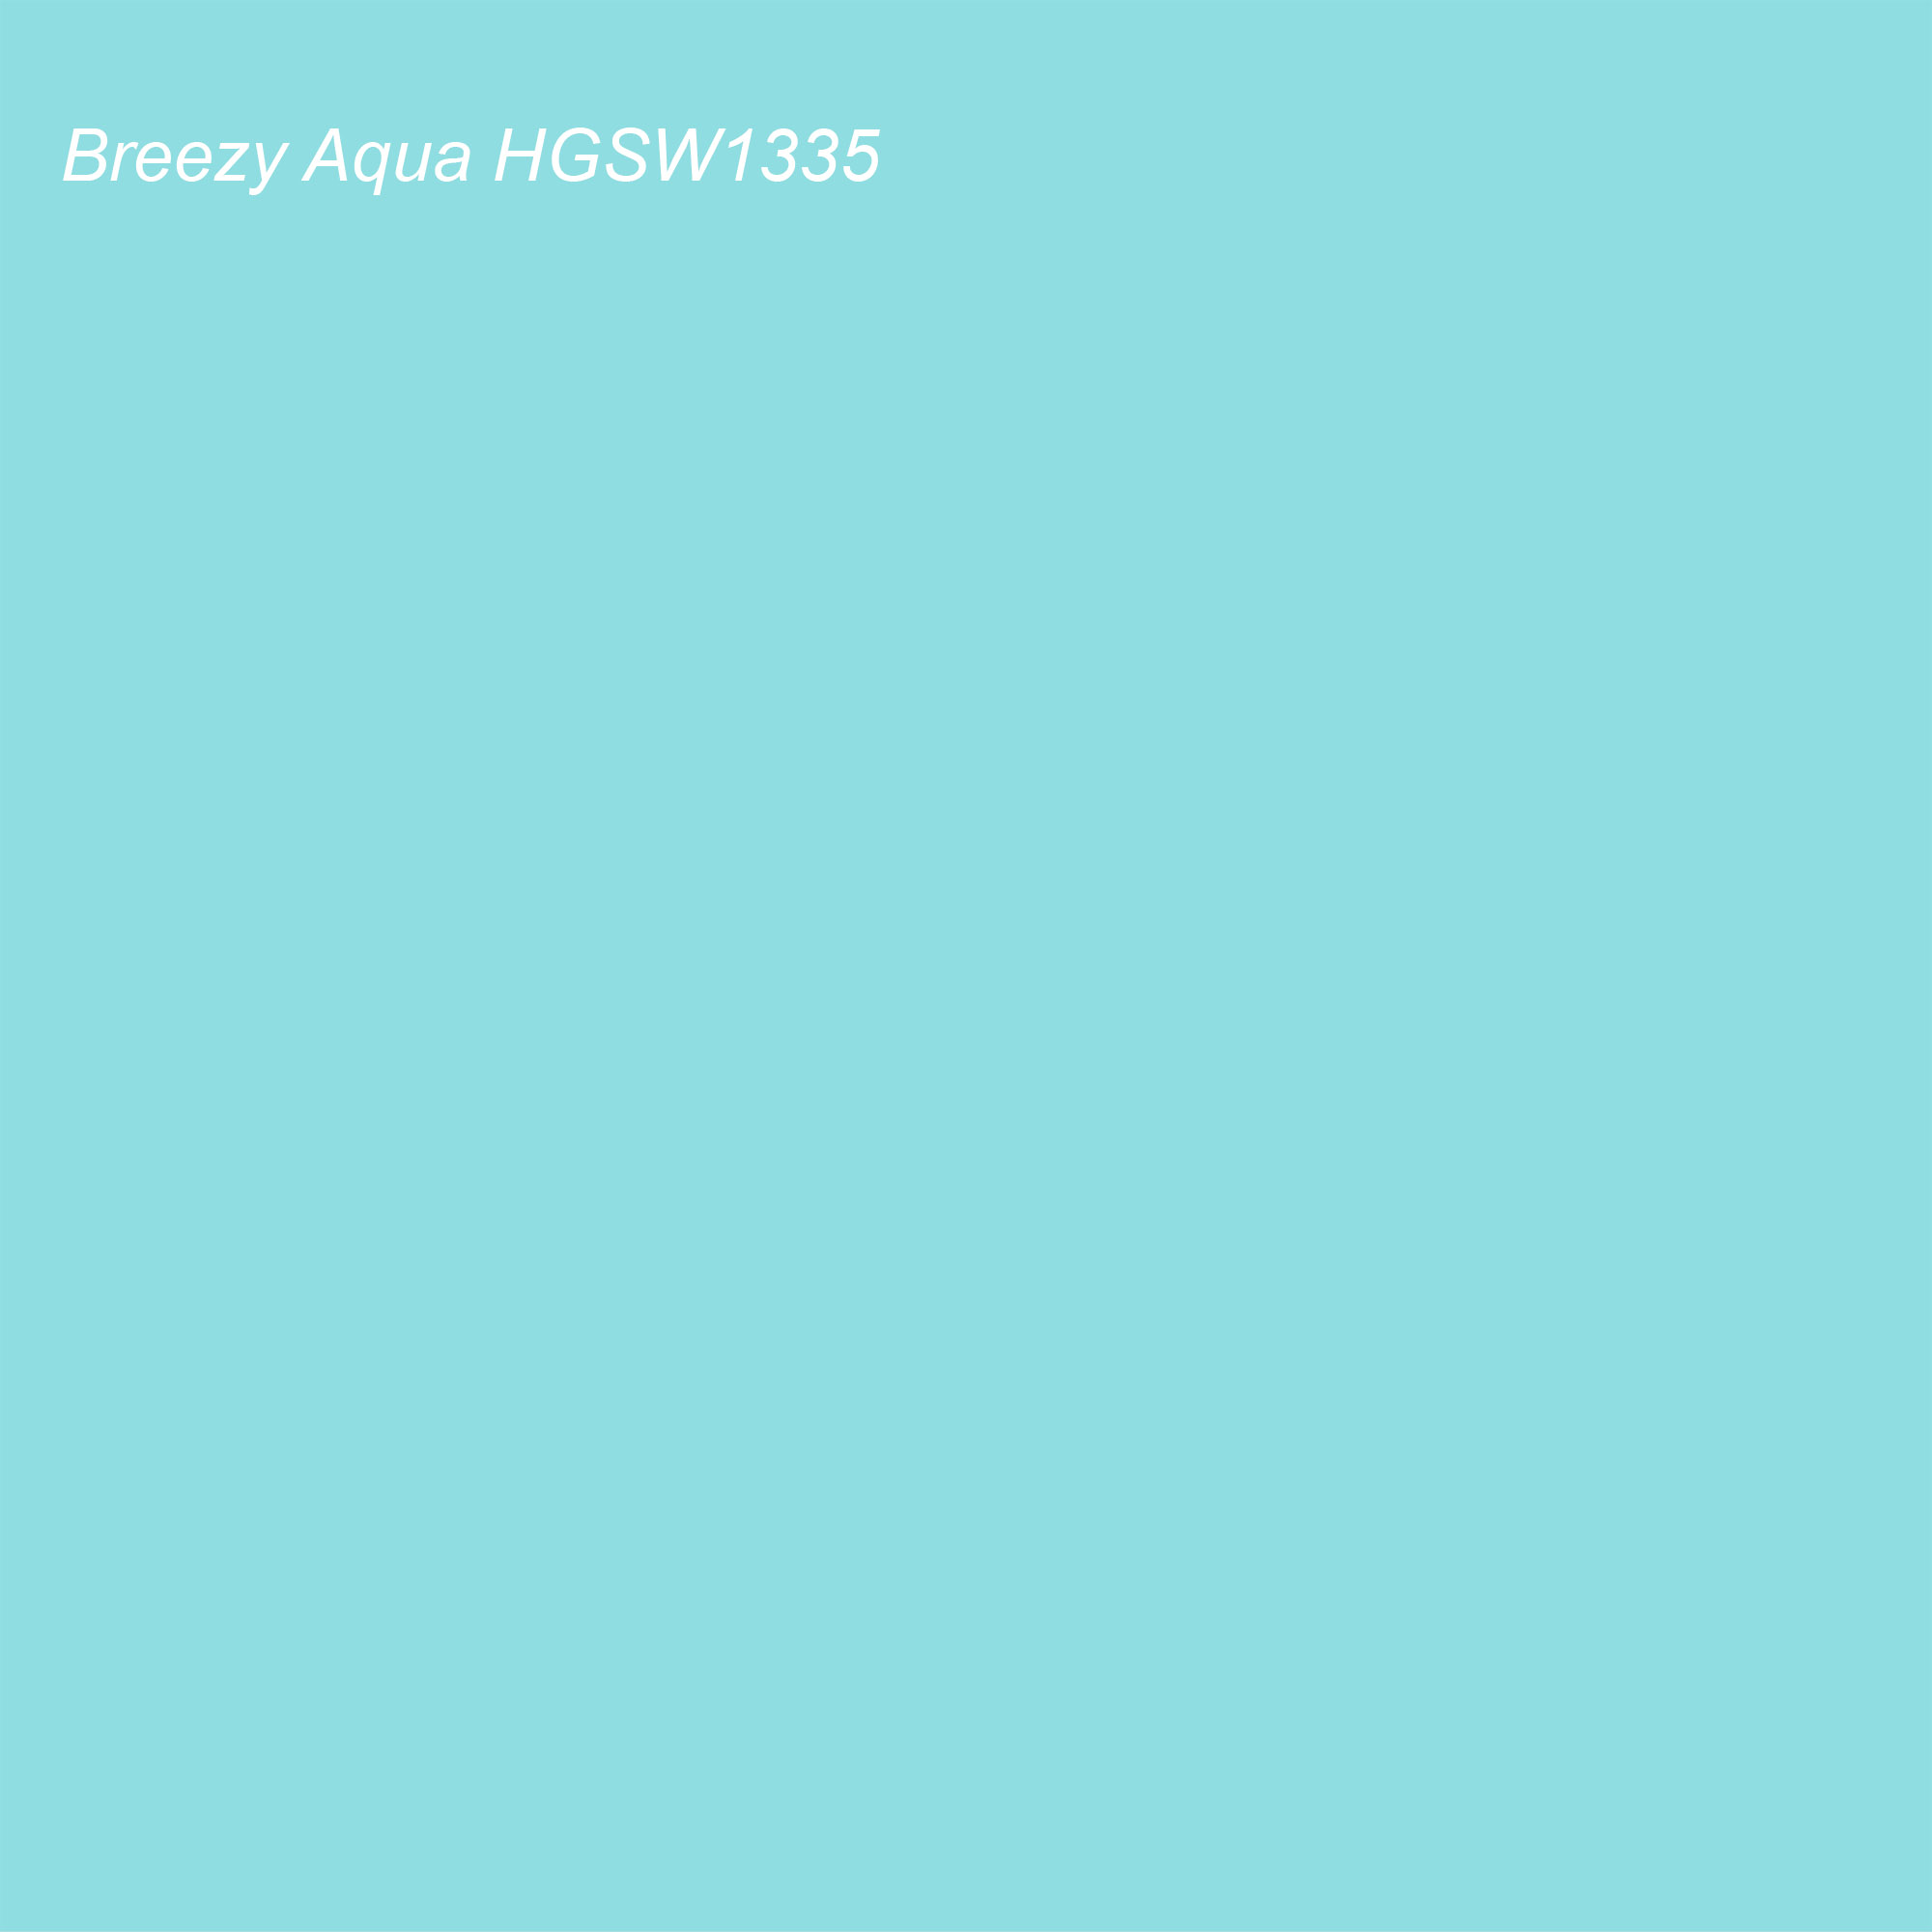 HGTV 2021 Color of the Year Suggested Accent Shade Breezy Aqua HGSW1335